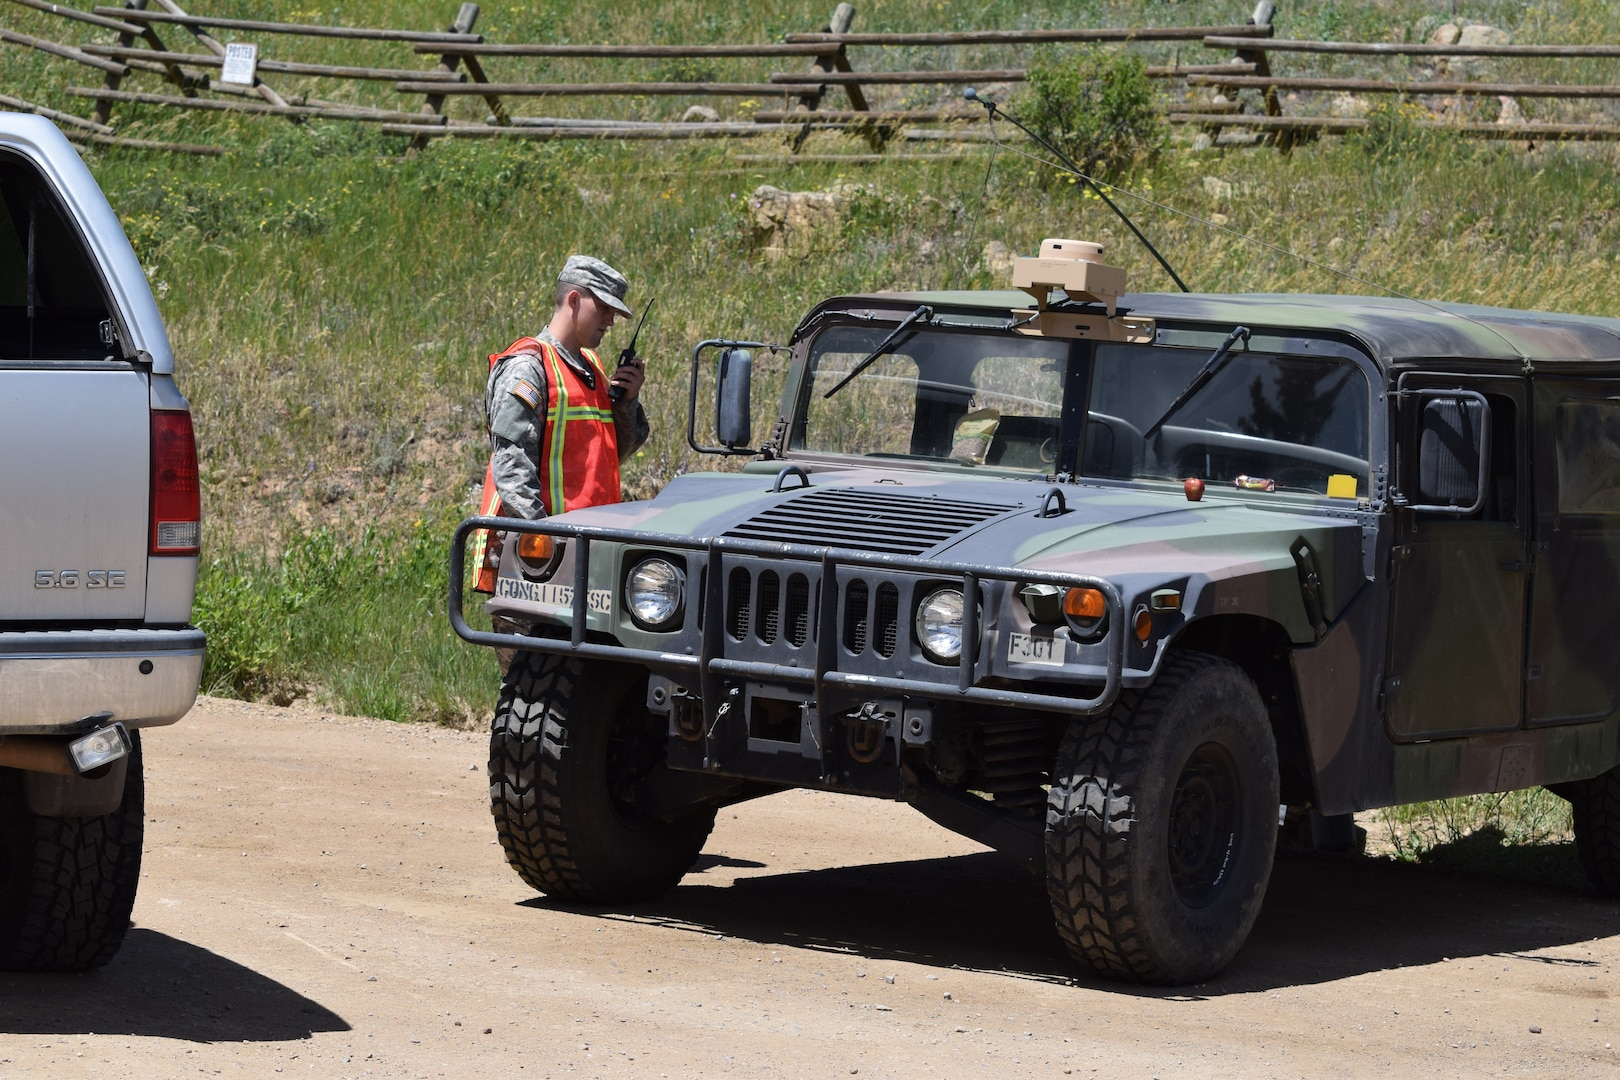 Colorado Army National Guardsmen, Private Joshua Breeden, radios higher authorities for an authorization tp pass for a civilian traveling through a road closer. Breeden is a member of Task Force Security assisting Boulder County Sheriff's Office with Cold Springs fire relief efforts in Boulder Colo., July 11, 2016.